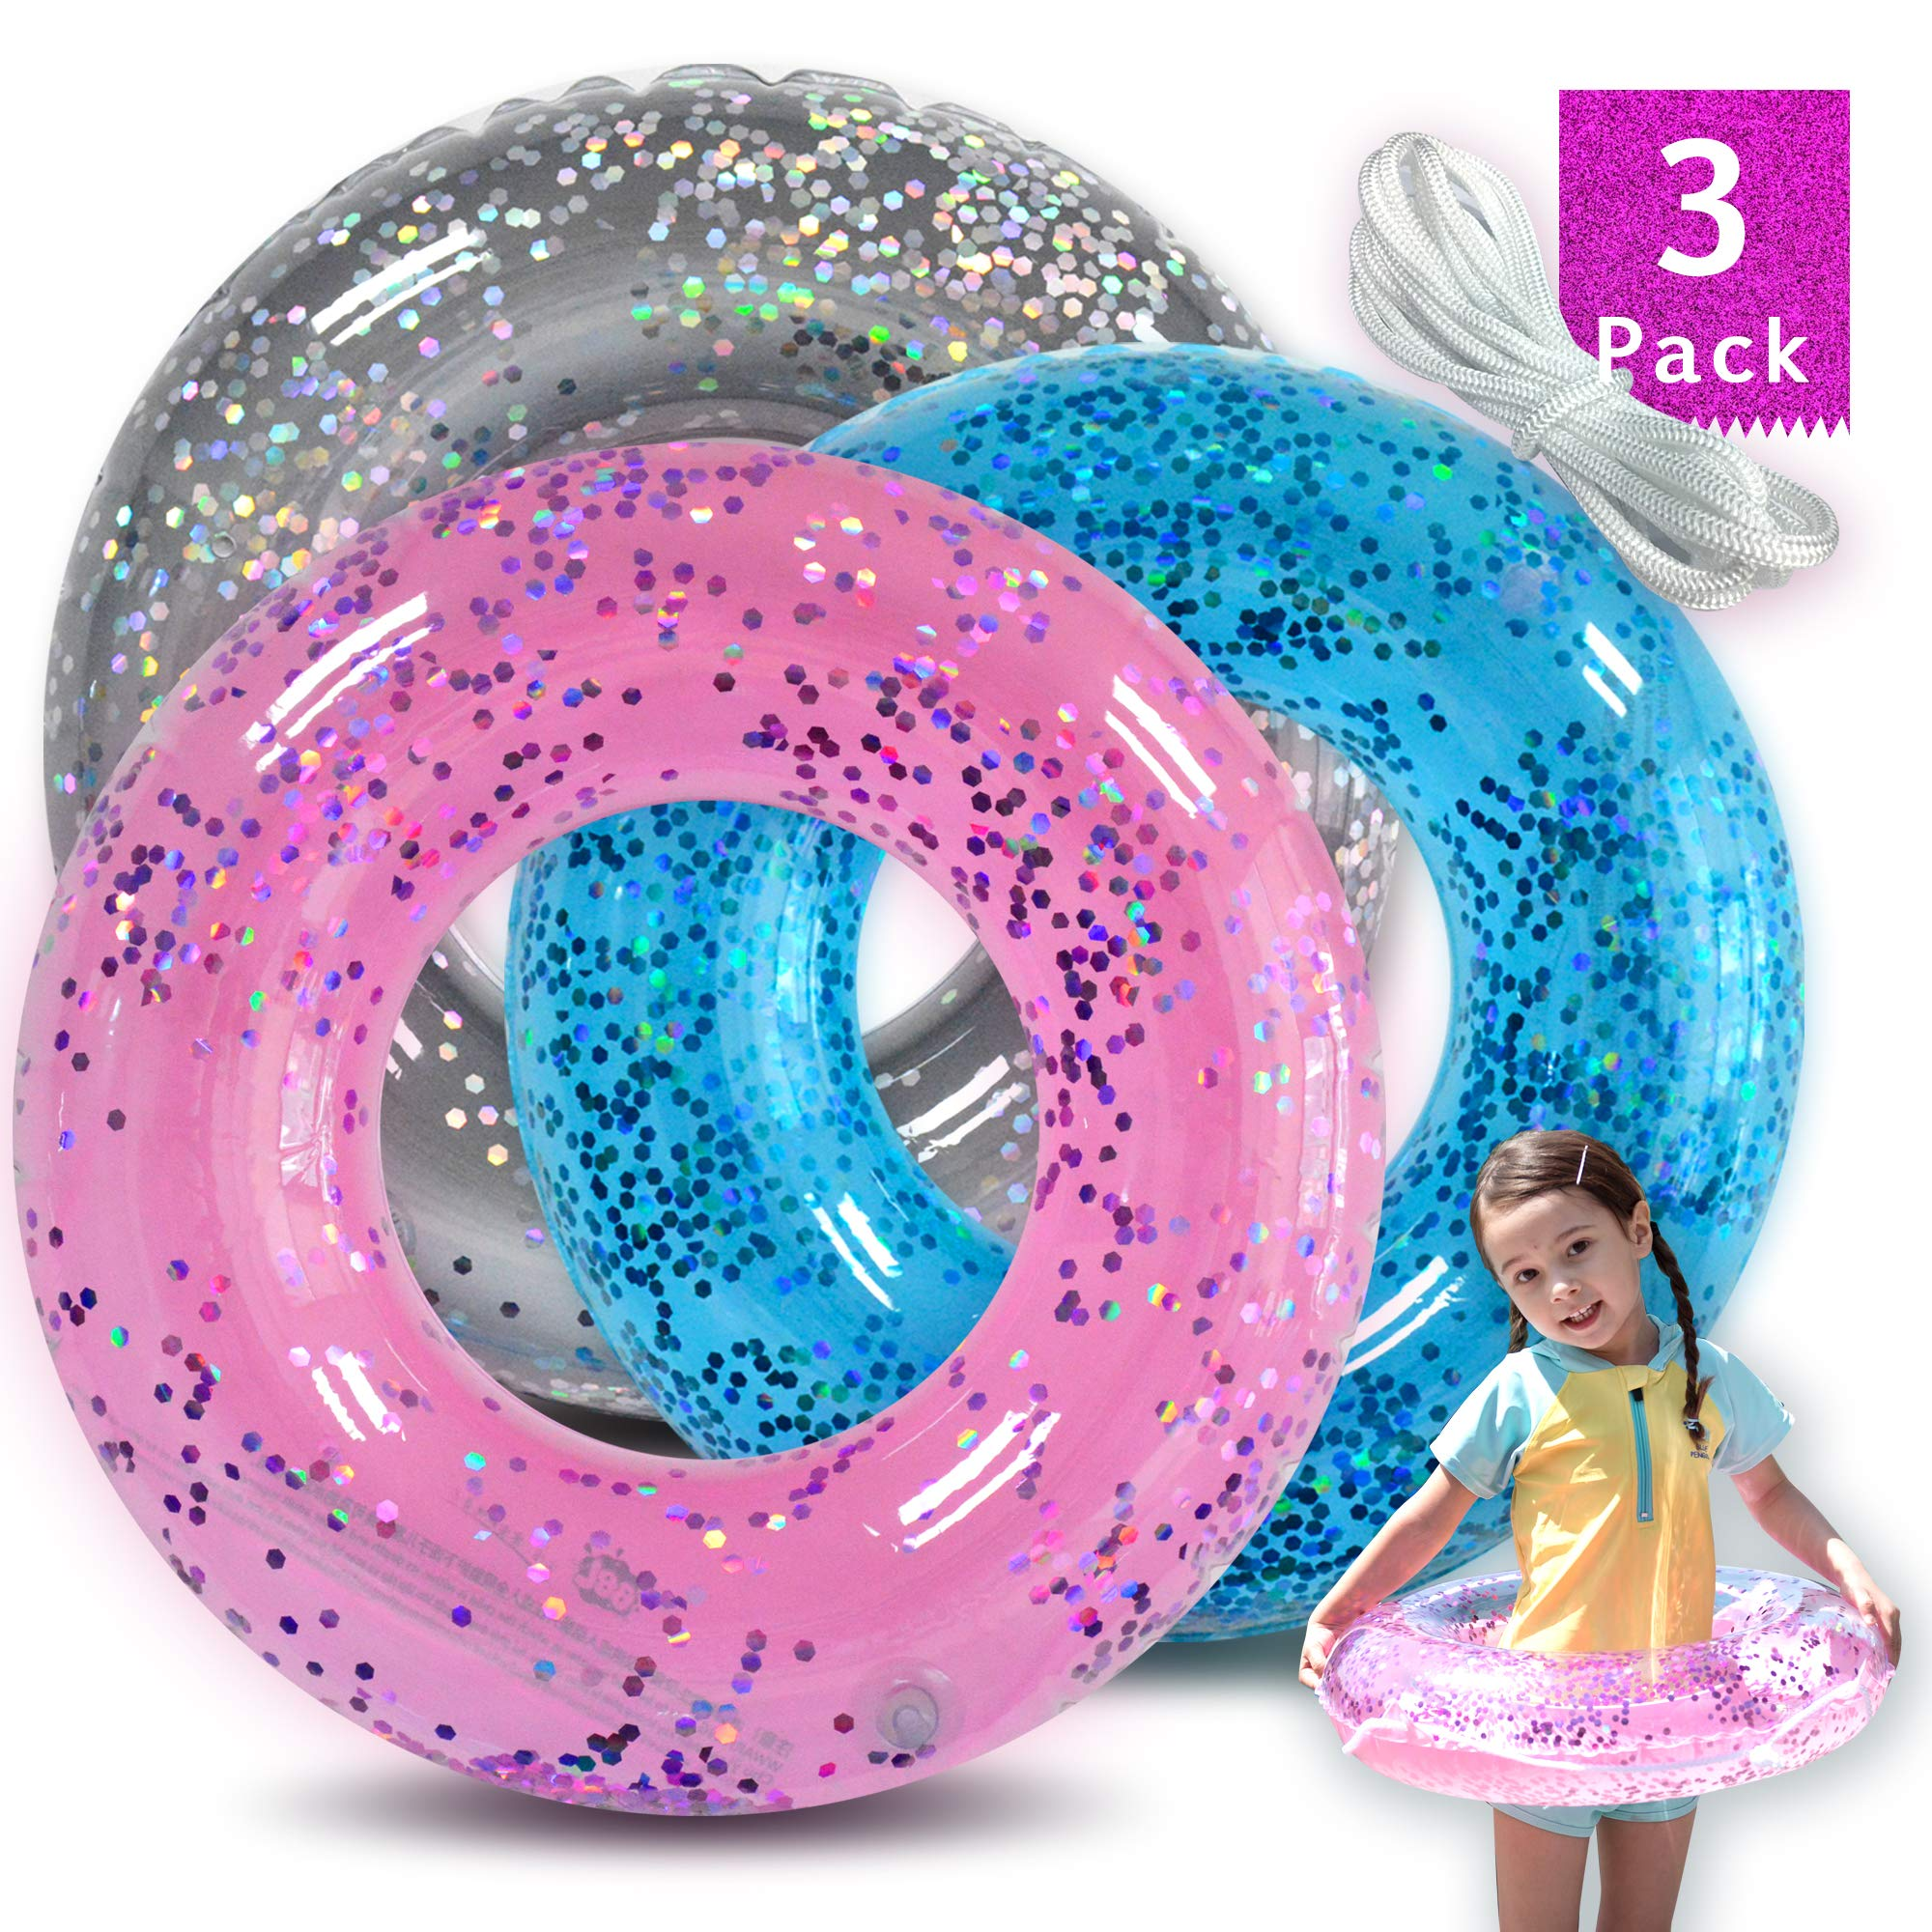 Animism Glitter Pool Tube (3Pack) with Pink Blue Sliver, Inflatable Swim Ring, Pool Toys for Summer Party Decorations by Animism